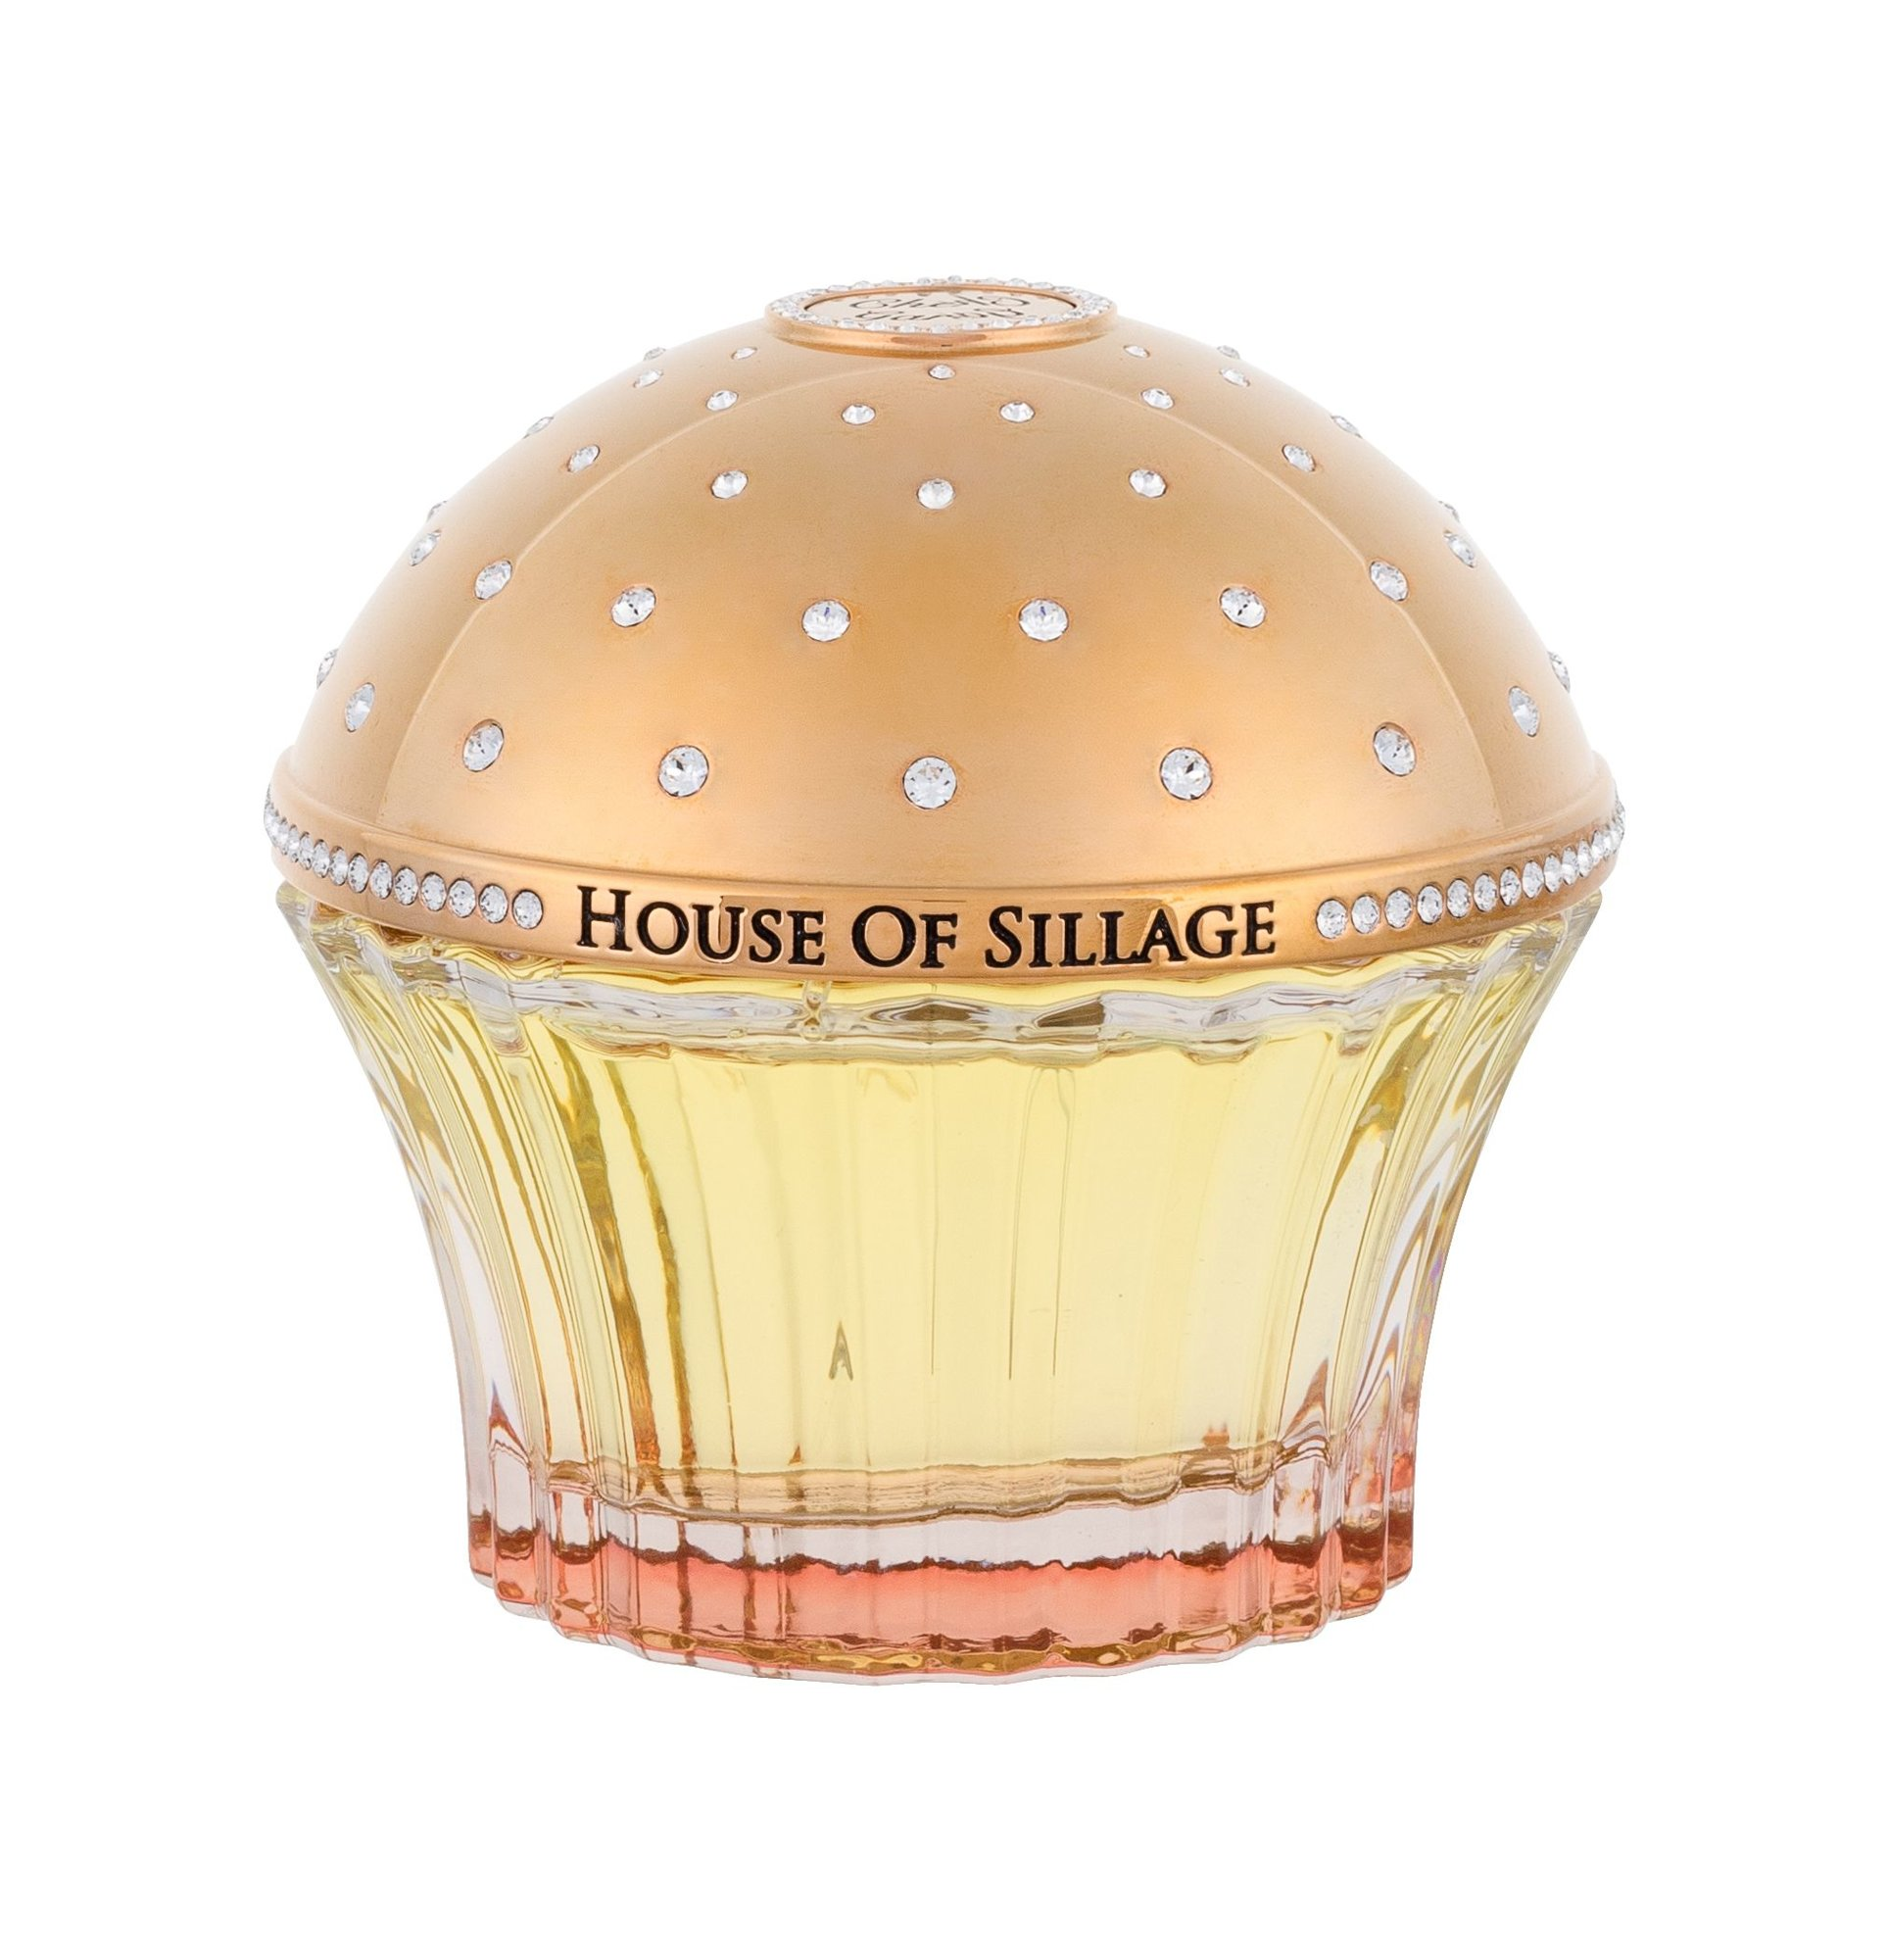 House of Sillage Signature Collection Cherry Garden Perfume 75ml